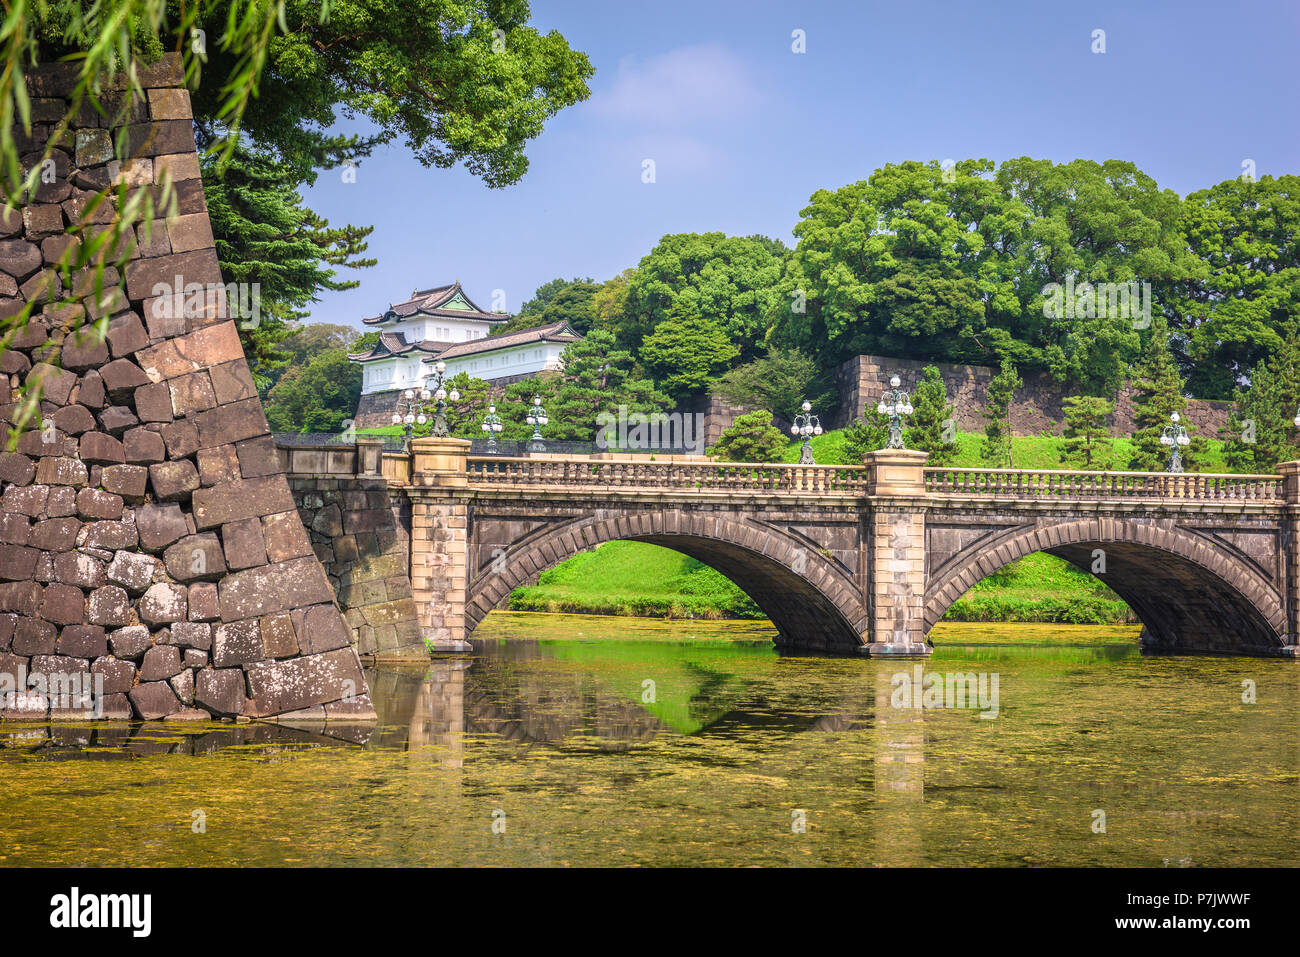 Tokyo, Japan at the Imperial Palace moat and bridge. - Stock Image